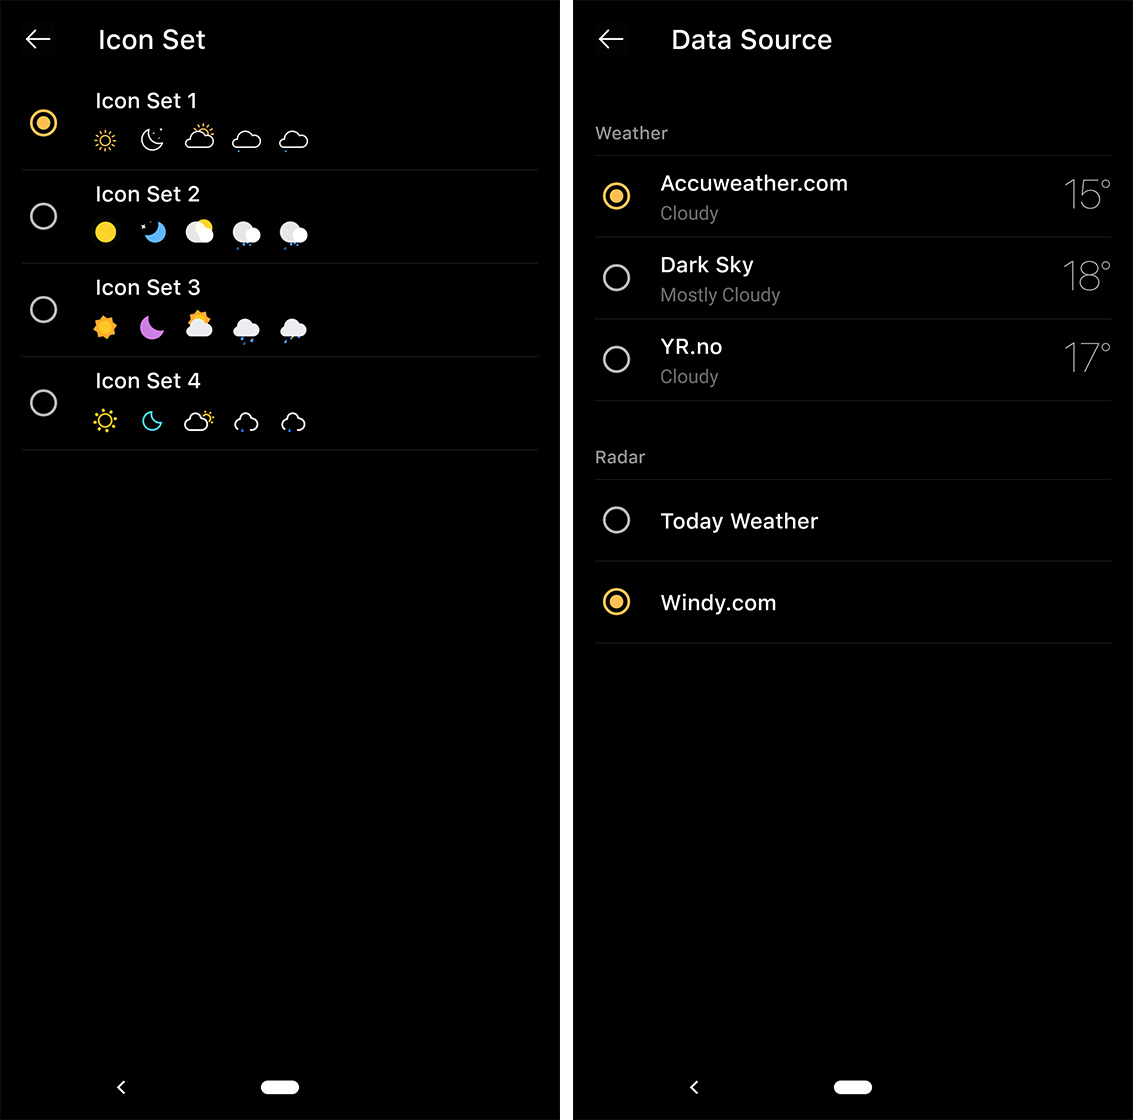 Icons and data sources